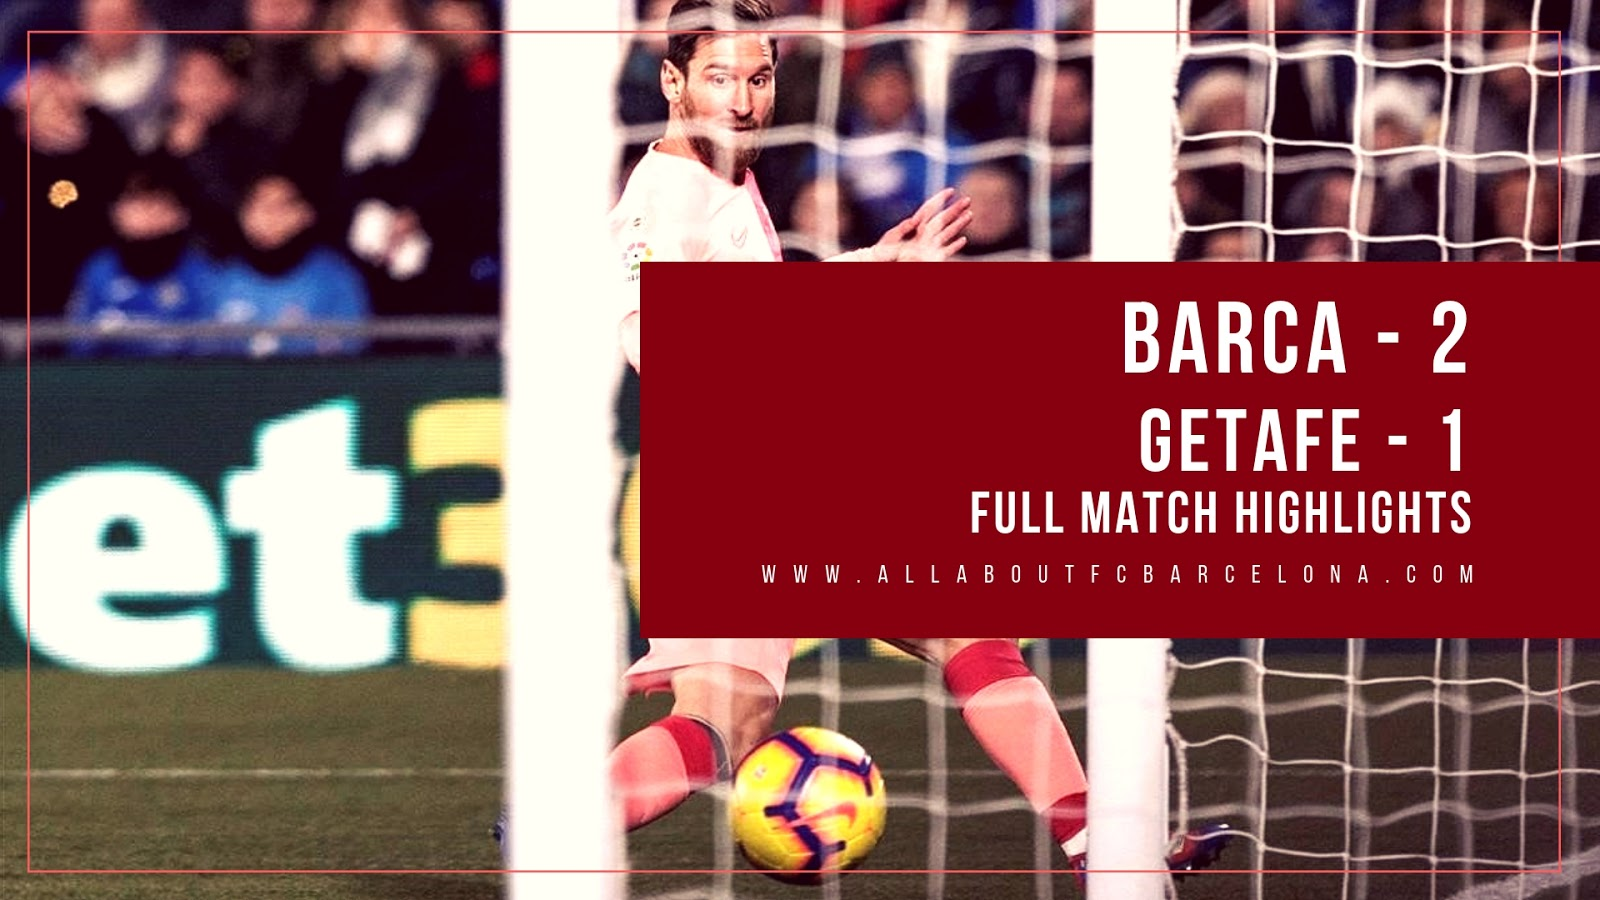 Check out Highlights from Barca's 2-1 victory over Getafe #Messi #Barca #FCBarcelona